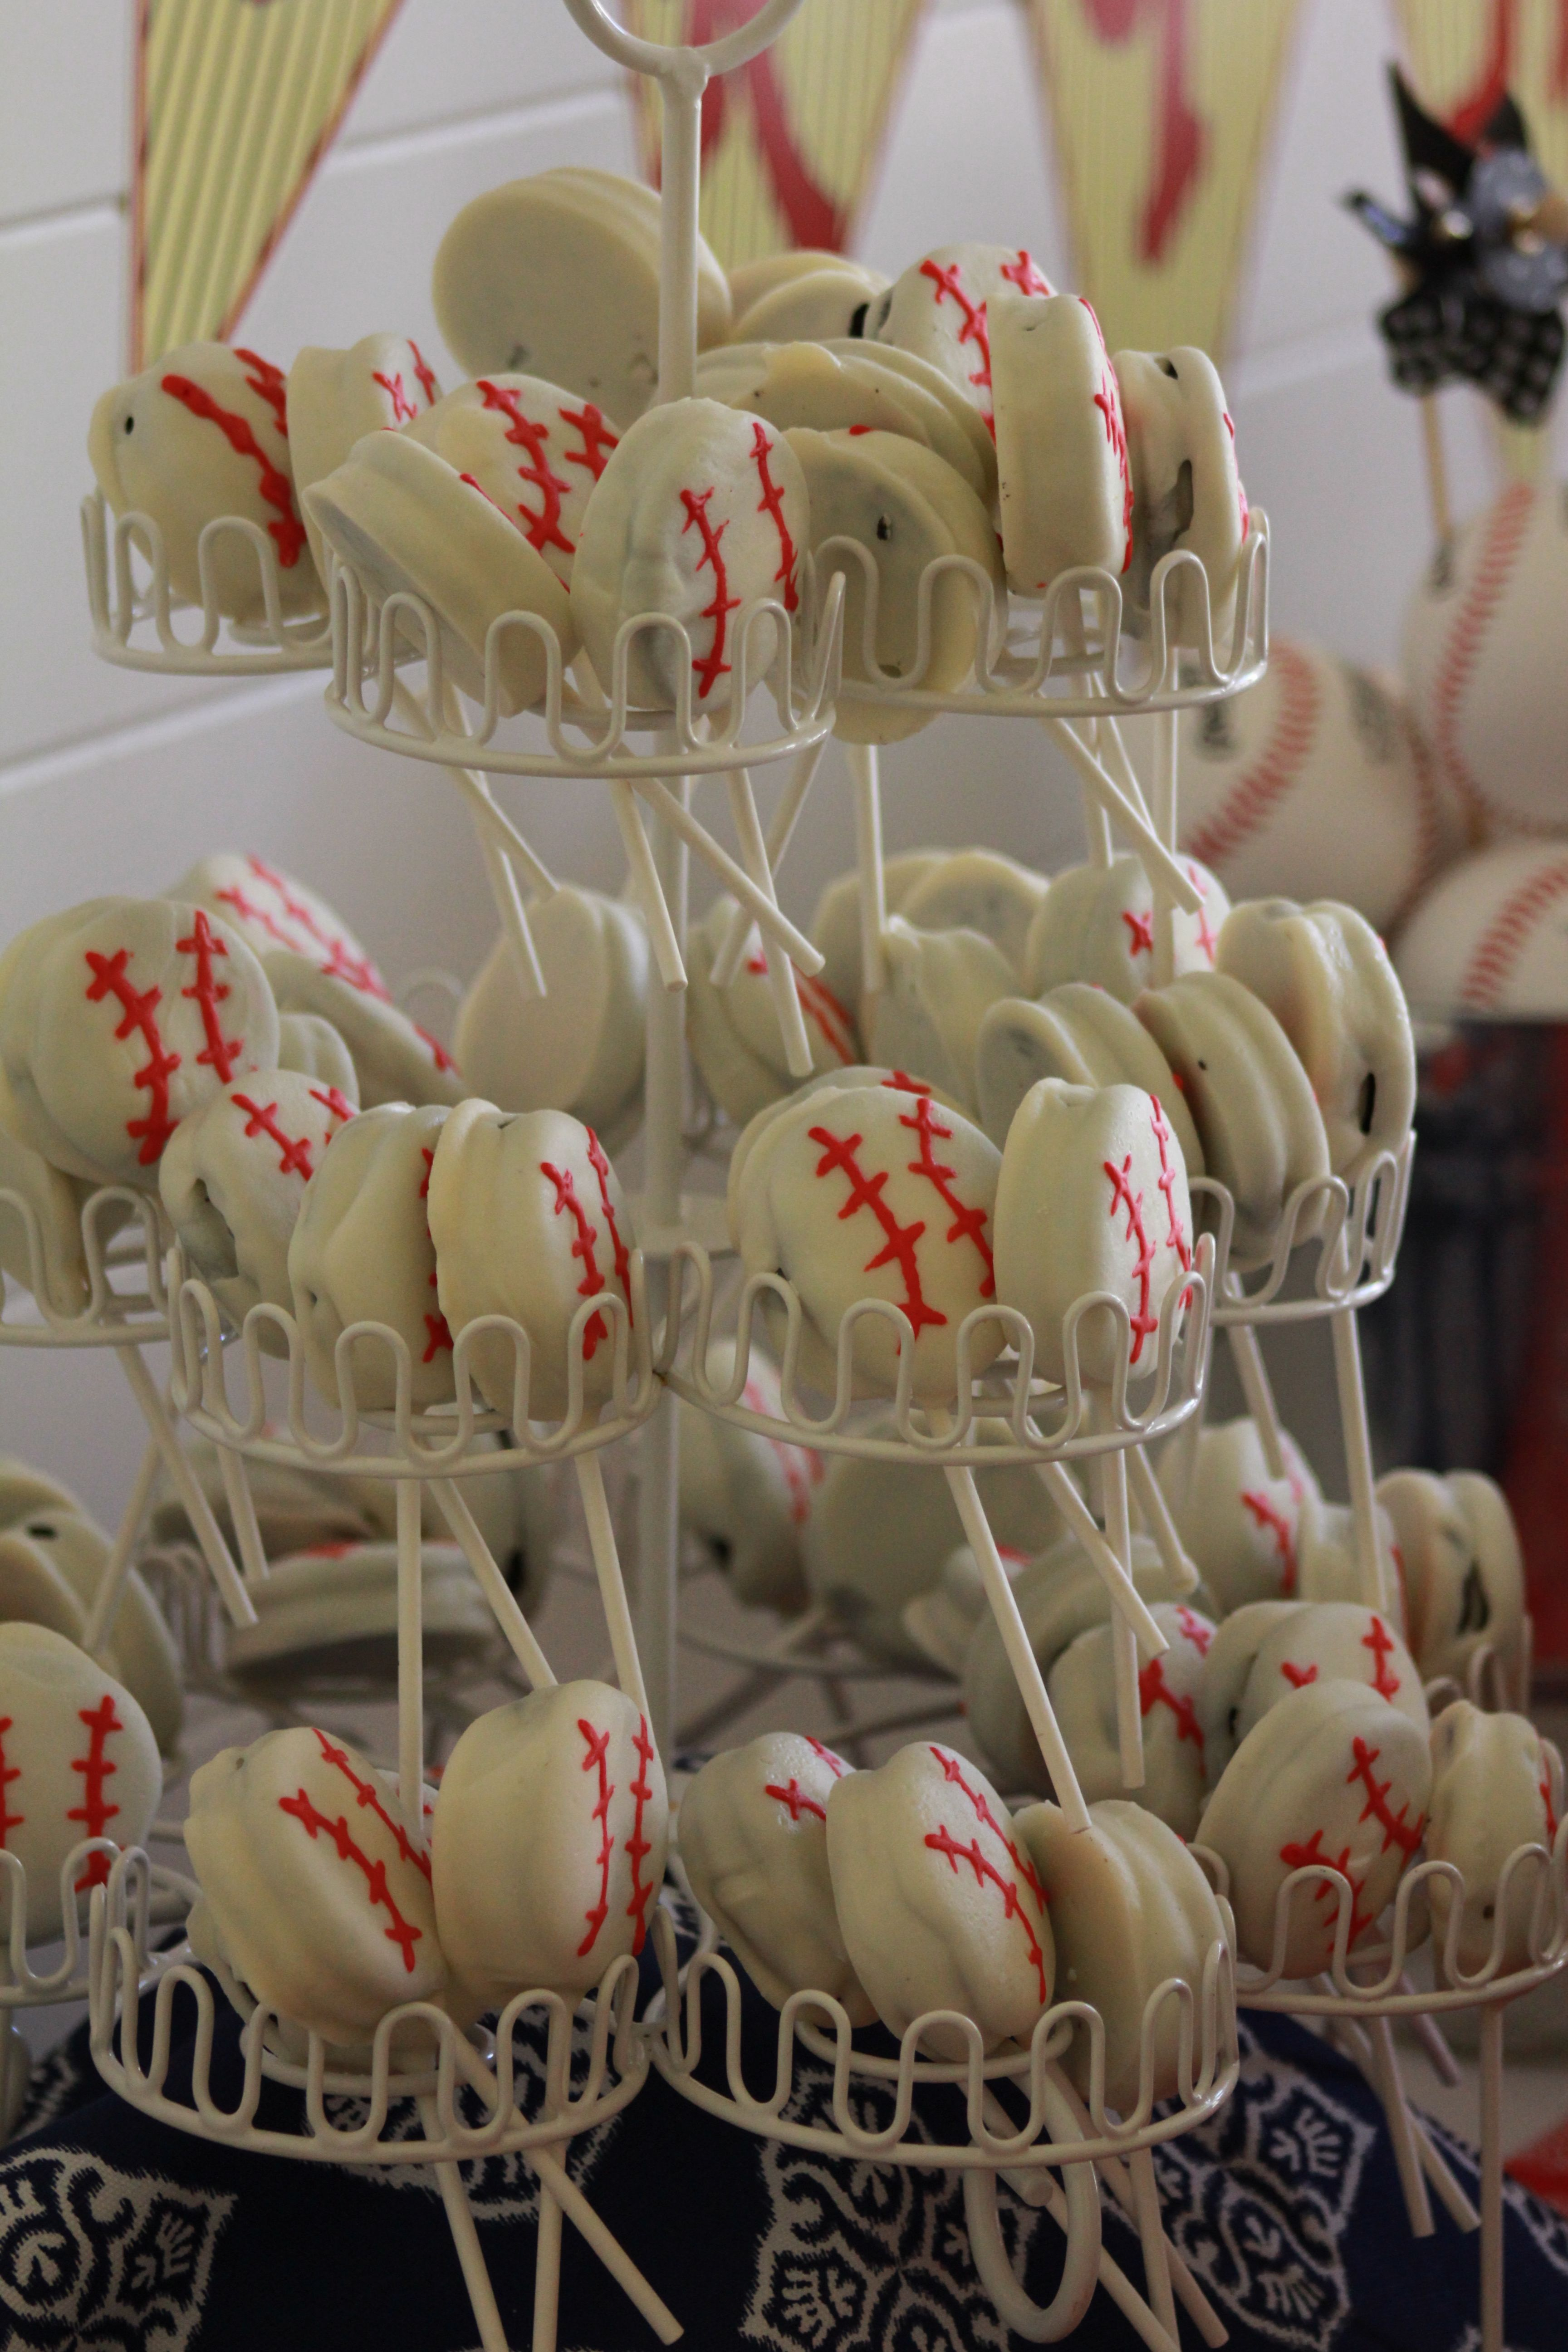 White chocolate covered oreo baseballs perfect for end of season party